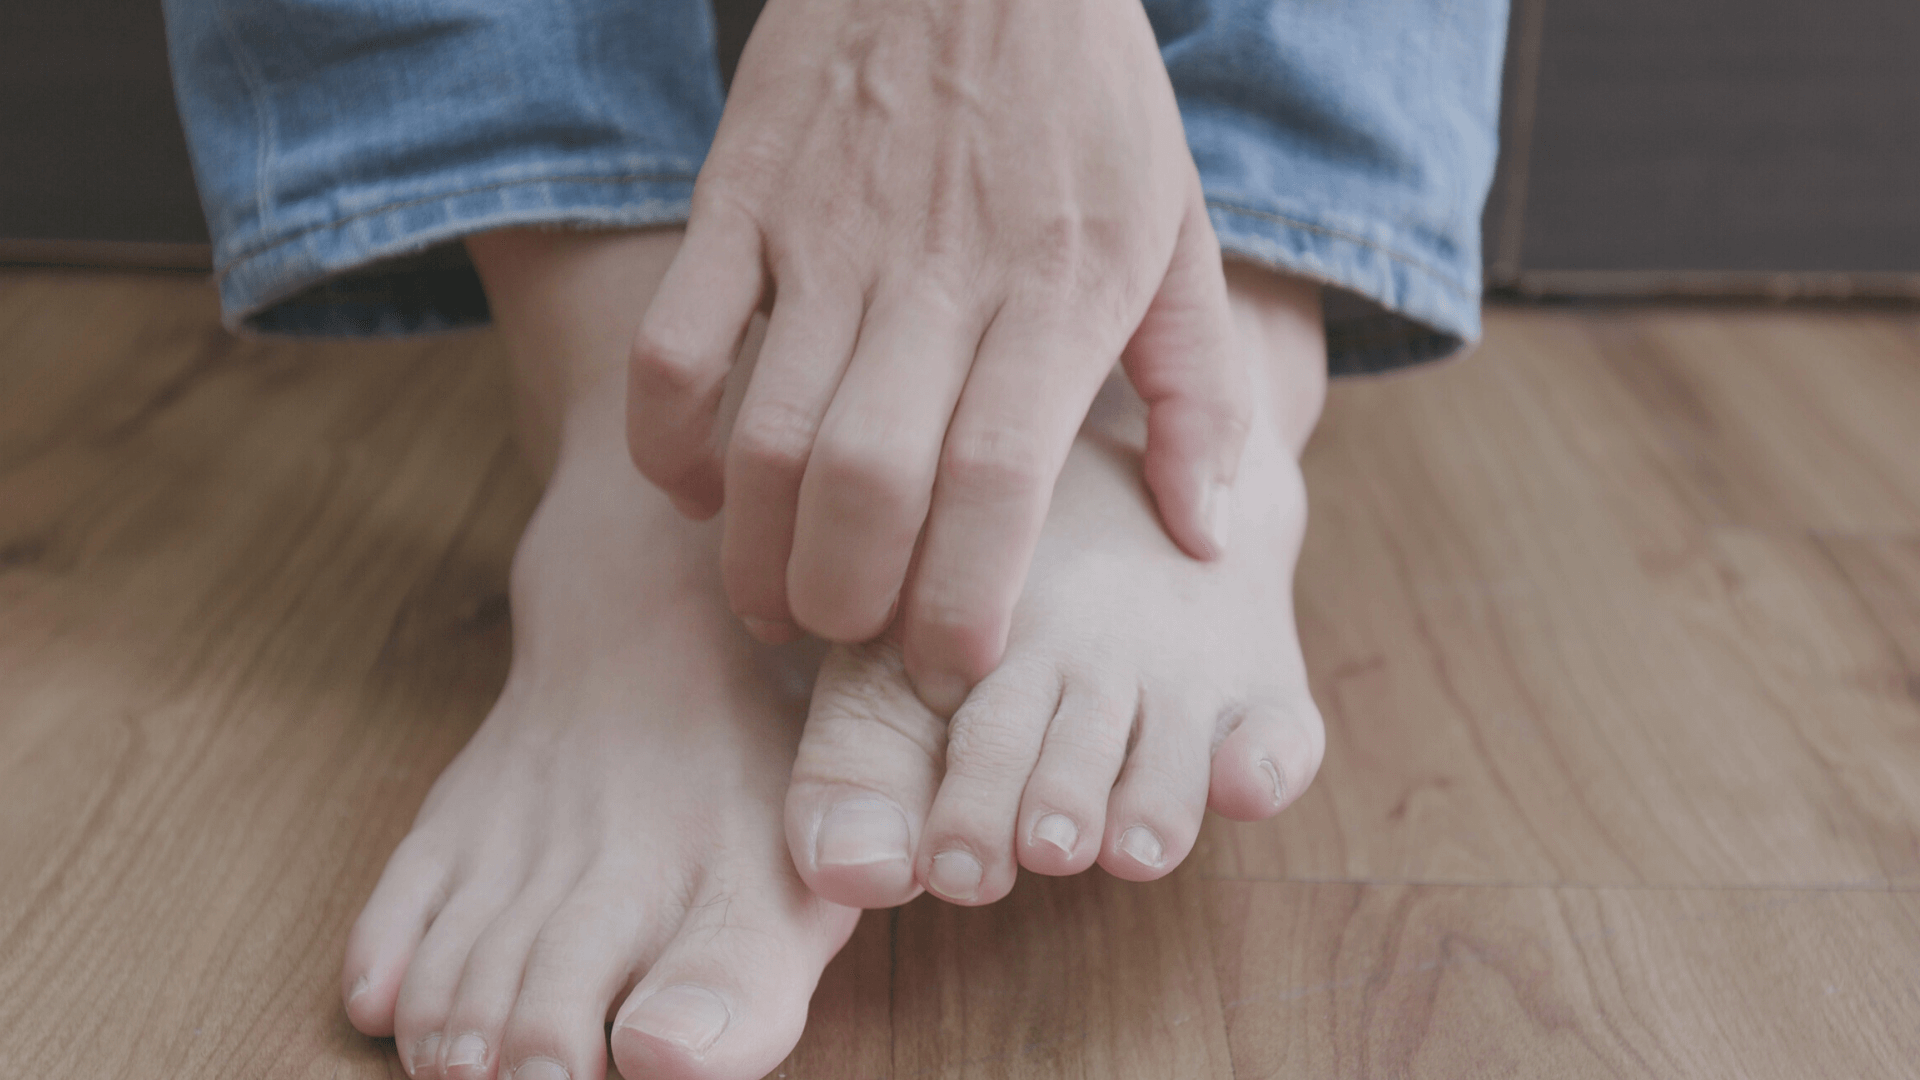 toe deformities sheffield rotherham doncaster worksop